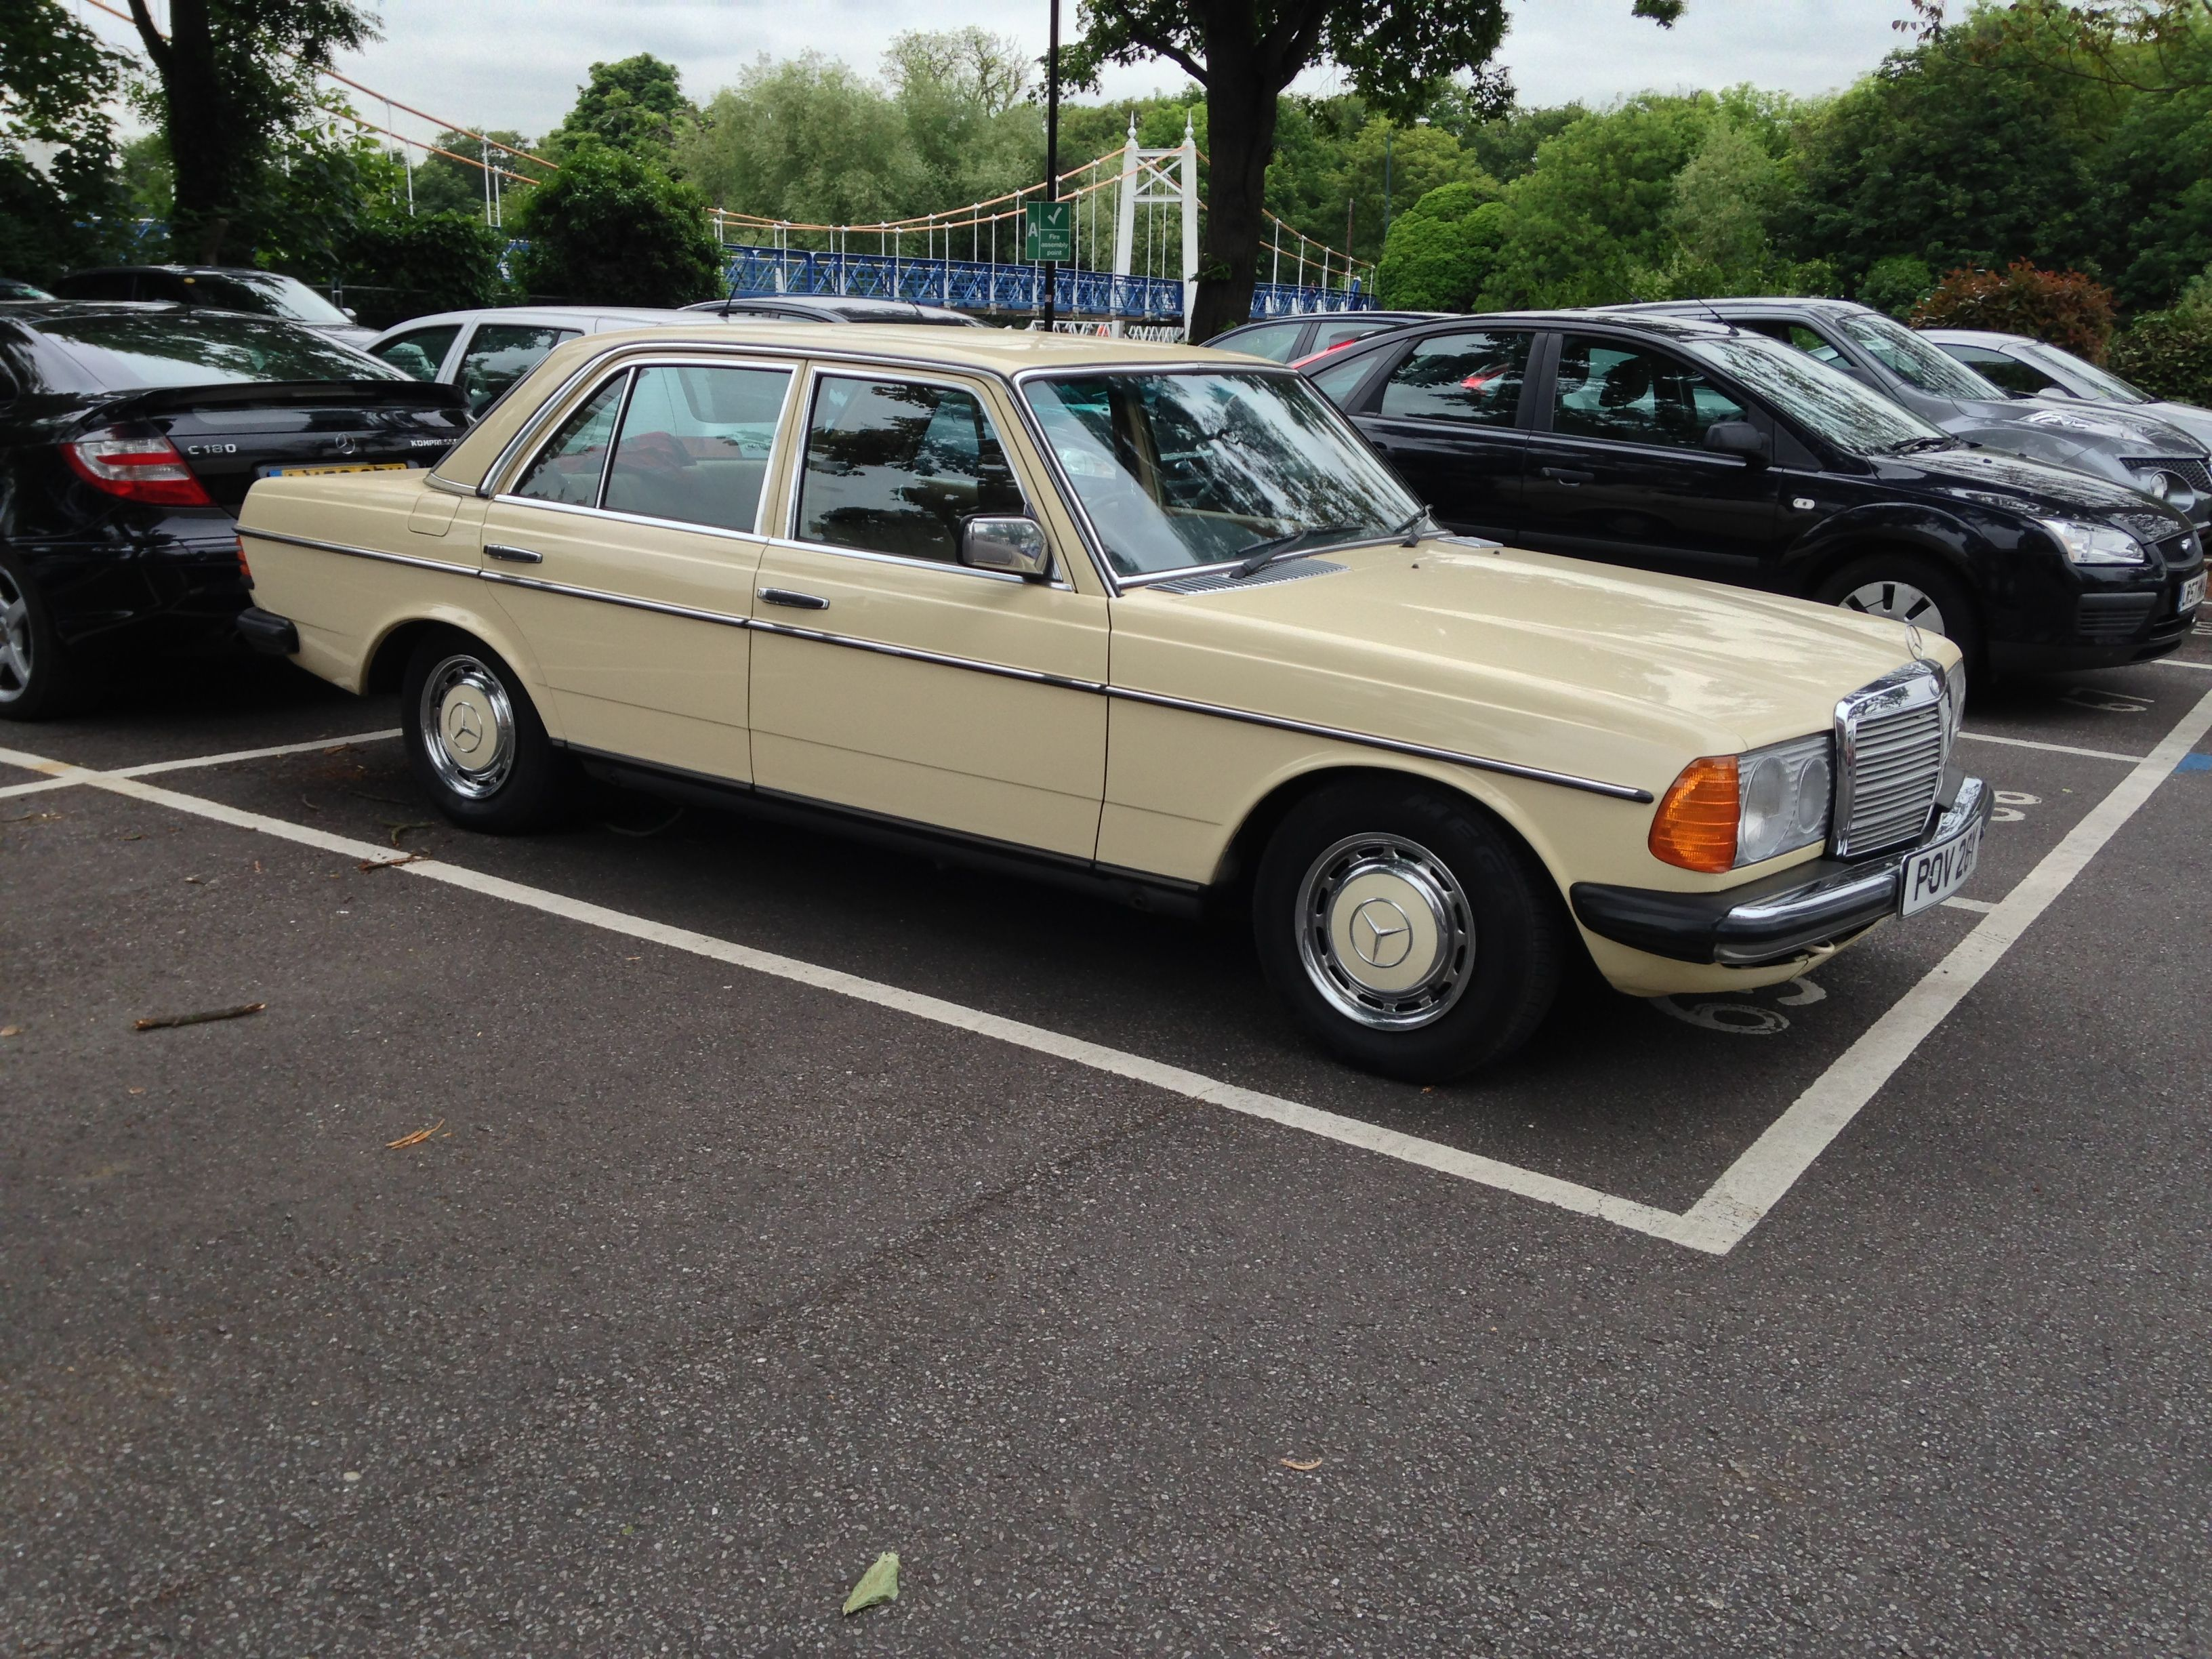 Very original w123 300td estate spotted in a car park probably everyday transport mercedesclassic benz thebestornothing diesel mercclub out